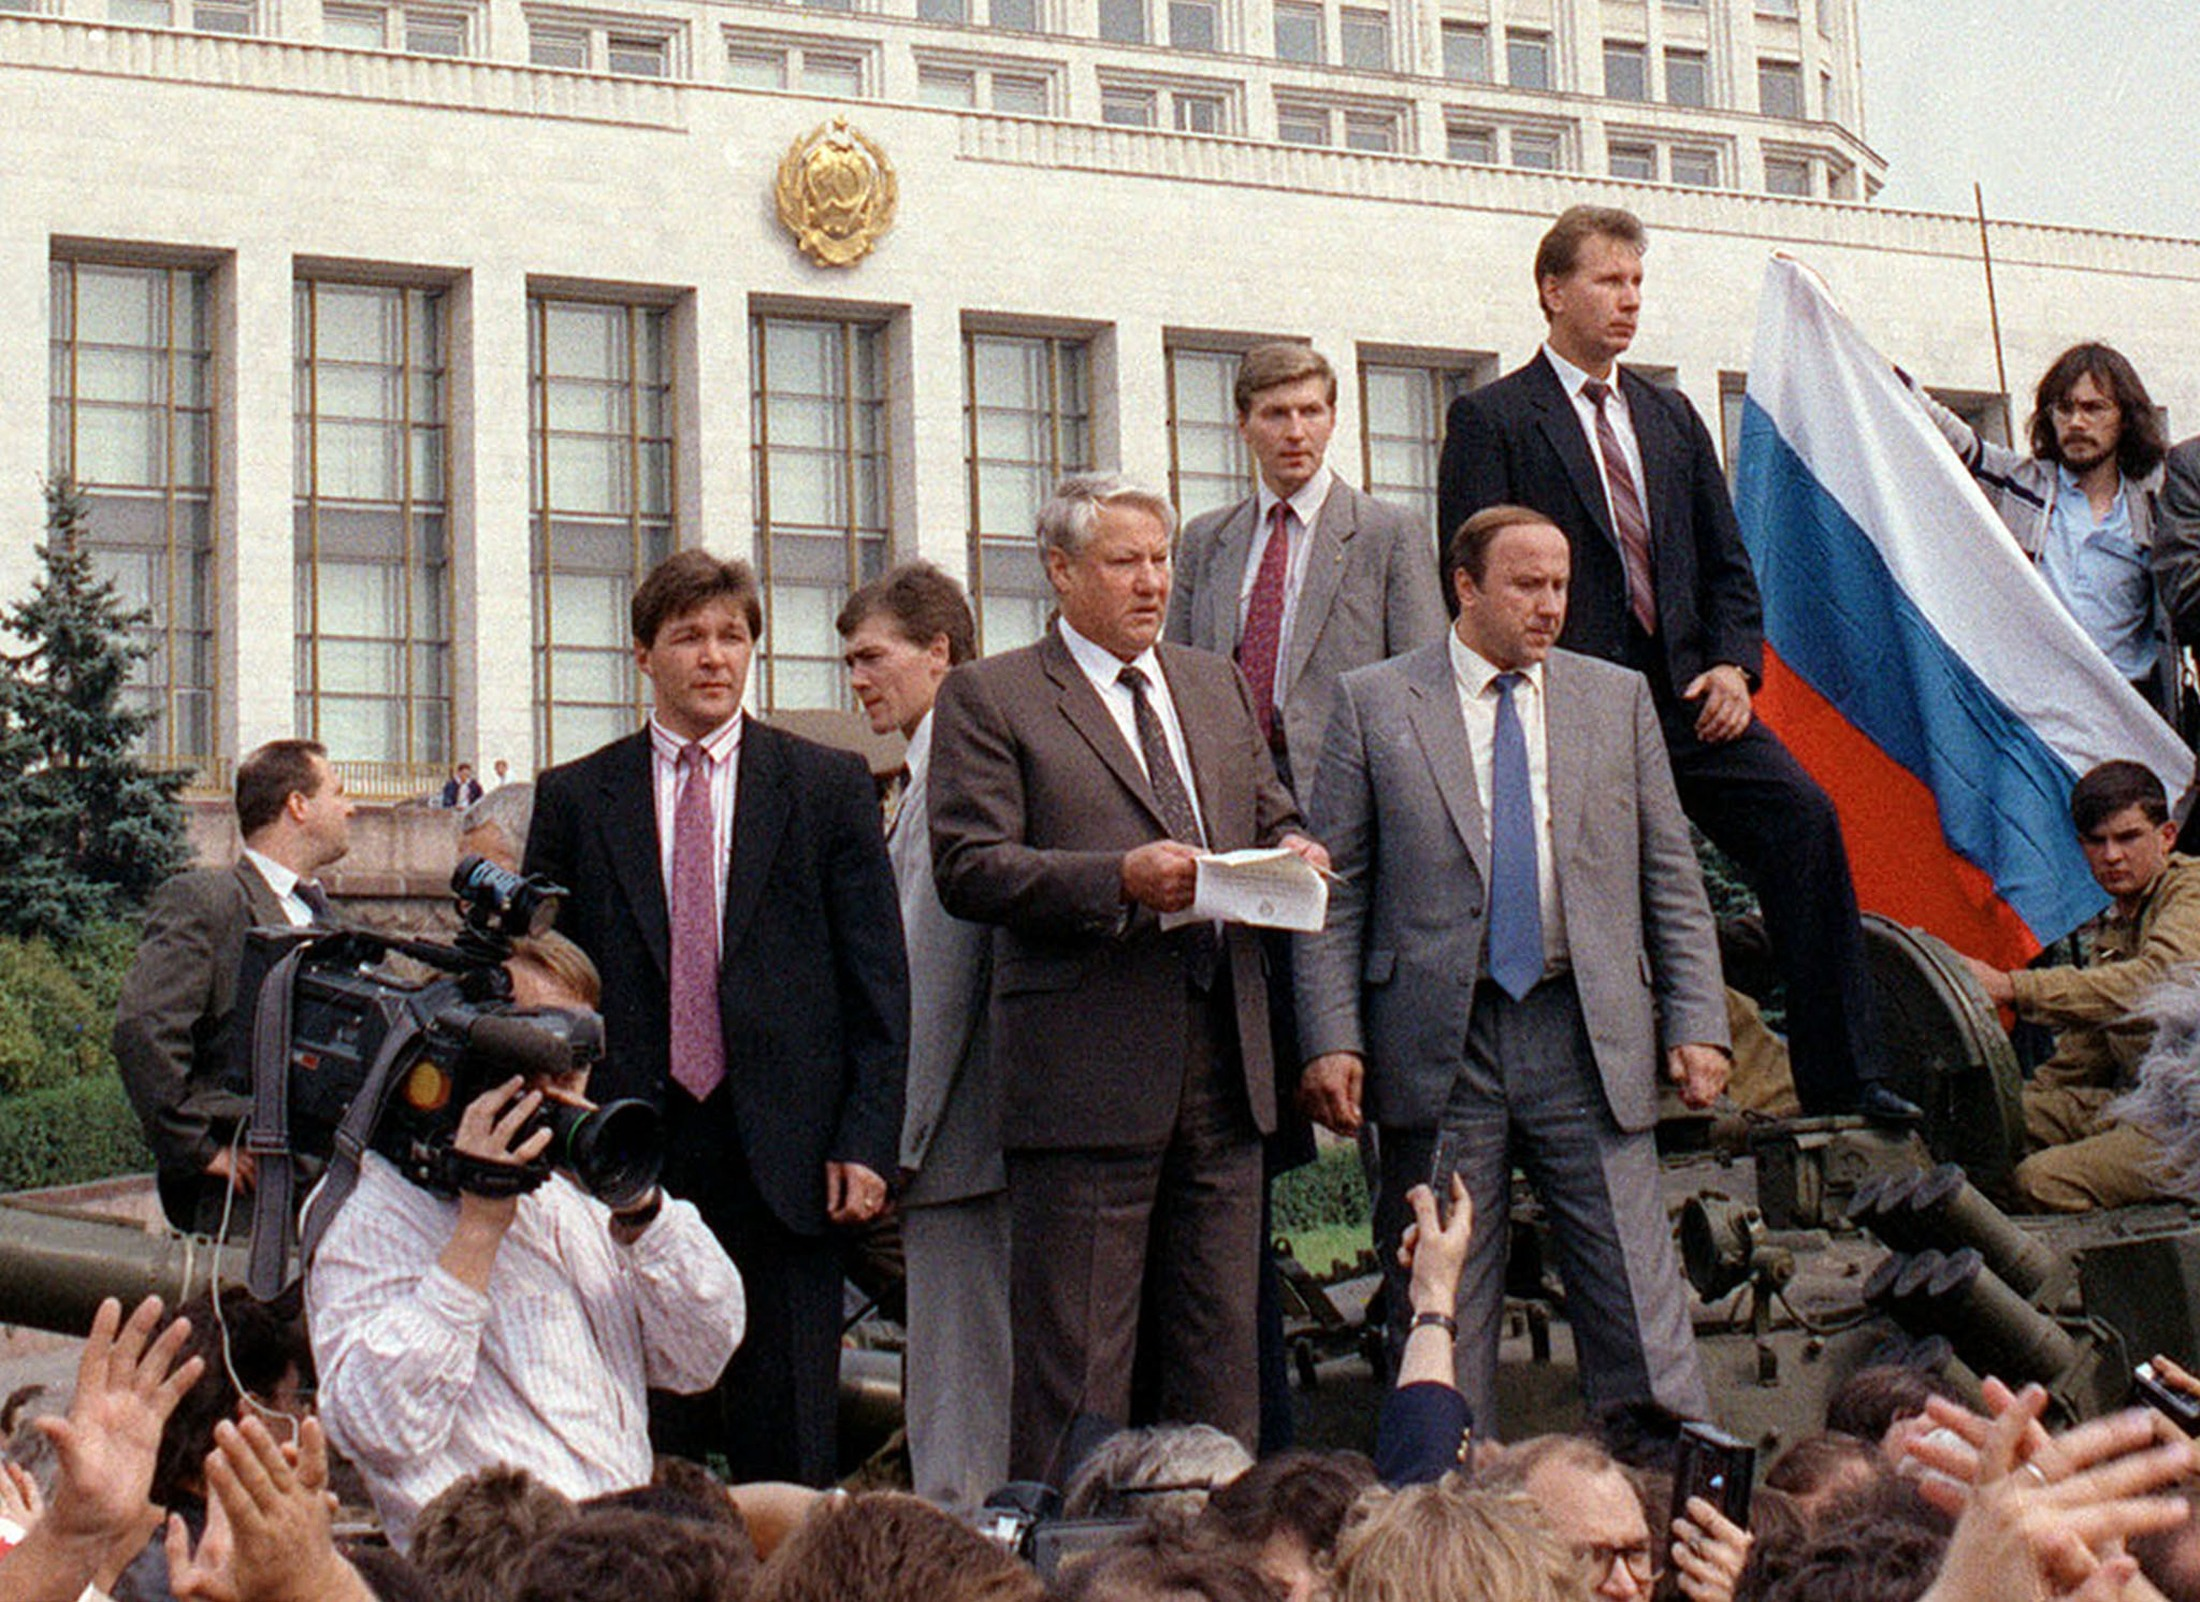 Russian President Boris Yeltsin (C) delivers a speech while standing atop an armoured vehicle outside the government house in this August,19, 1991 file photo. Russia is marking the 20th anniversary of the failed 1991 coup by hardline communists that hastened the end of the Soviet Union. REUTERS/Files  (RUSSIA - Tags: POLITICS CIVIL UNREST ANNIVERSARY)